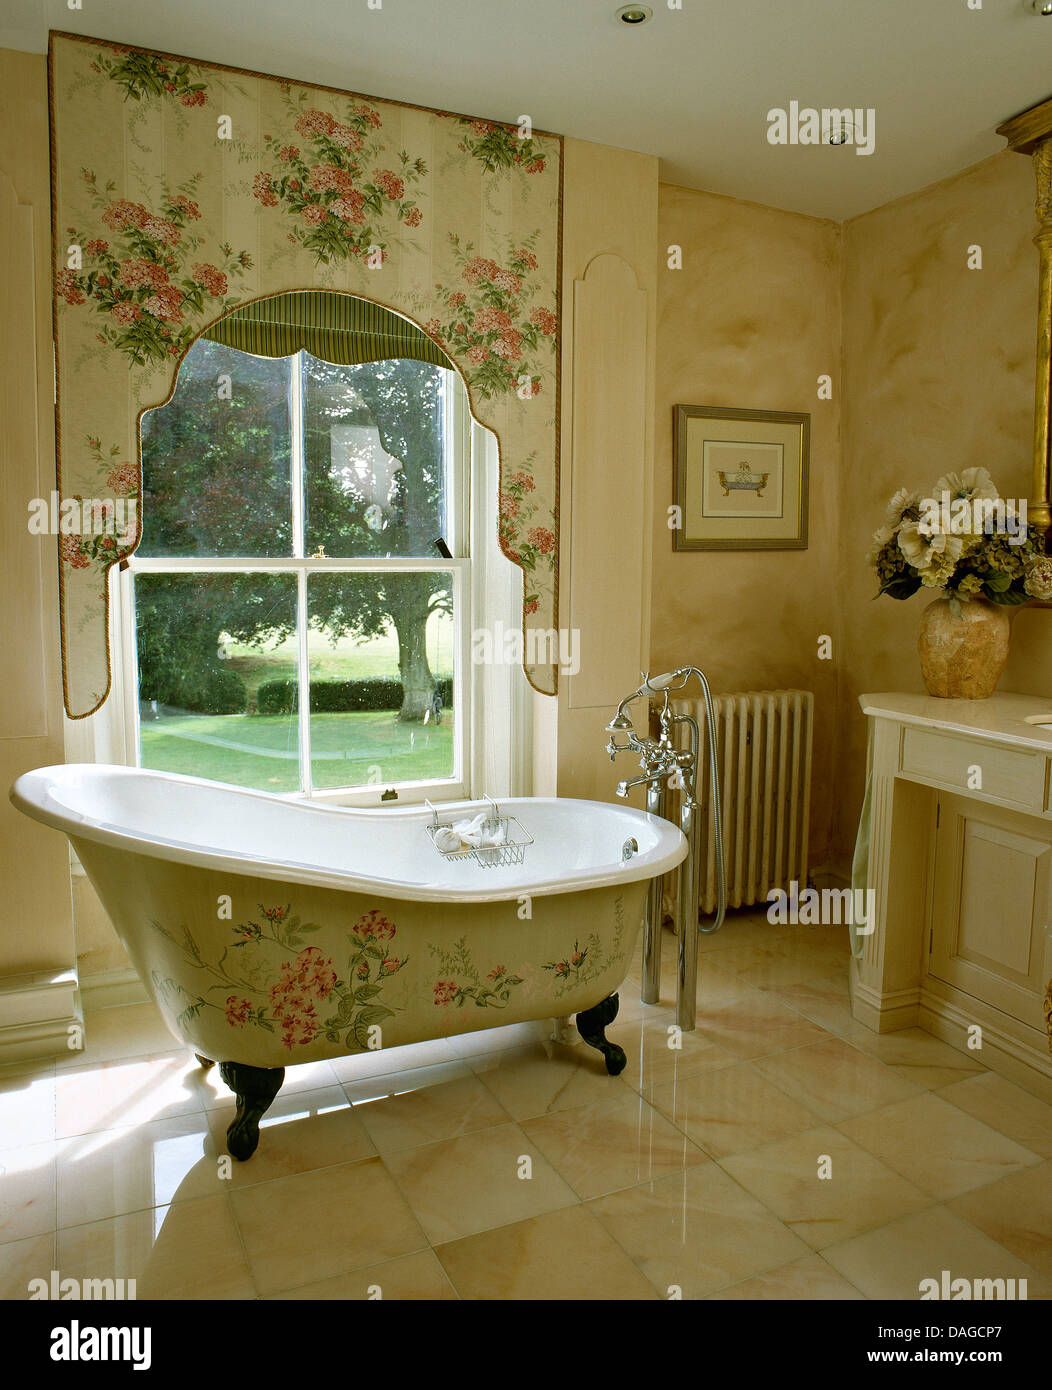 Bathroom With Matching Floral Pattern On Side Of Victorian Style Bath And  Lambrequin Above Window